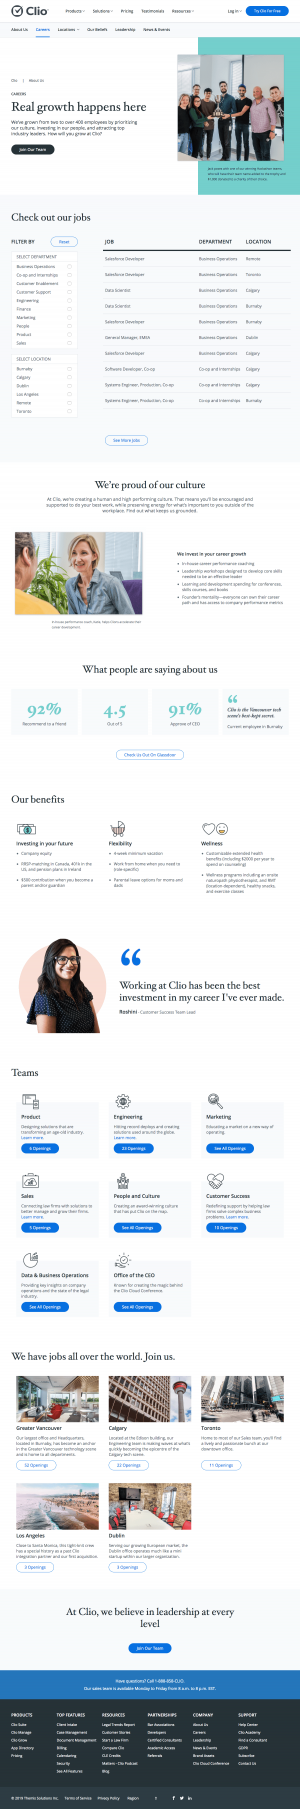 Clio - Career page